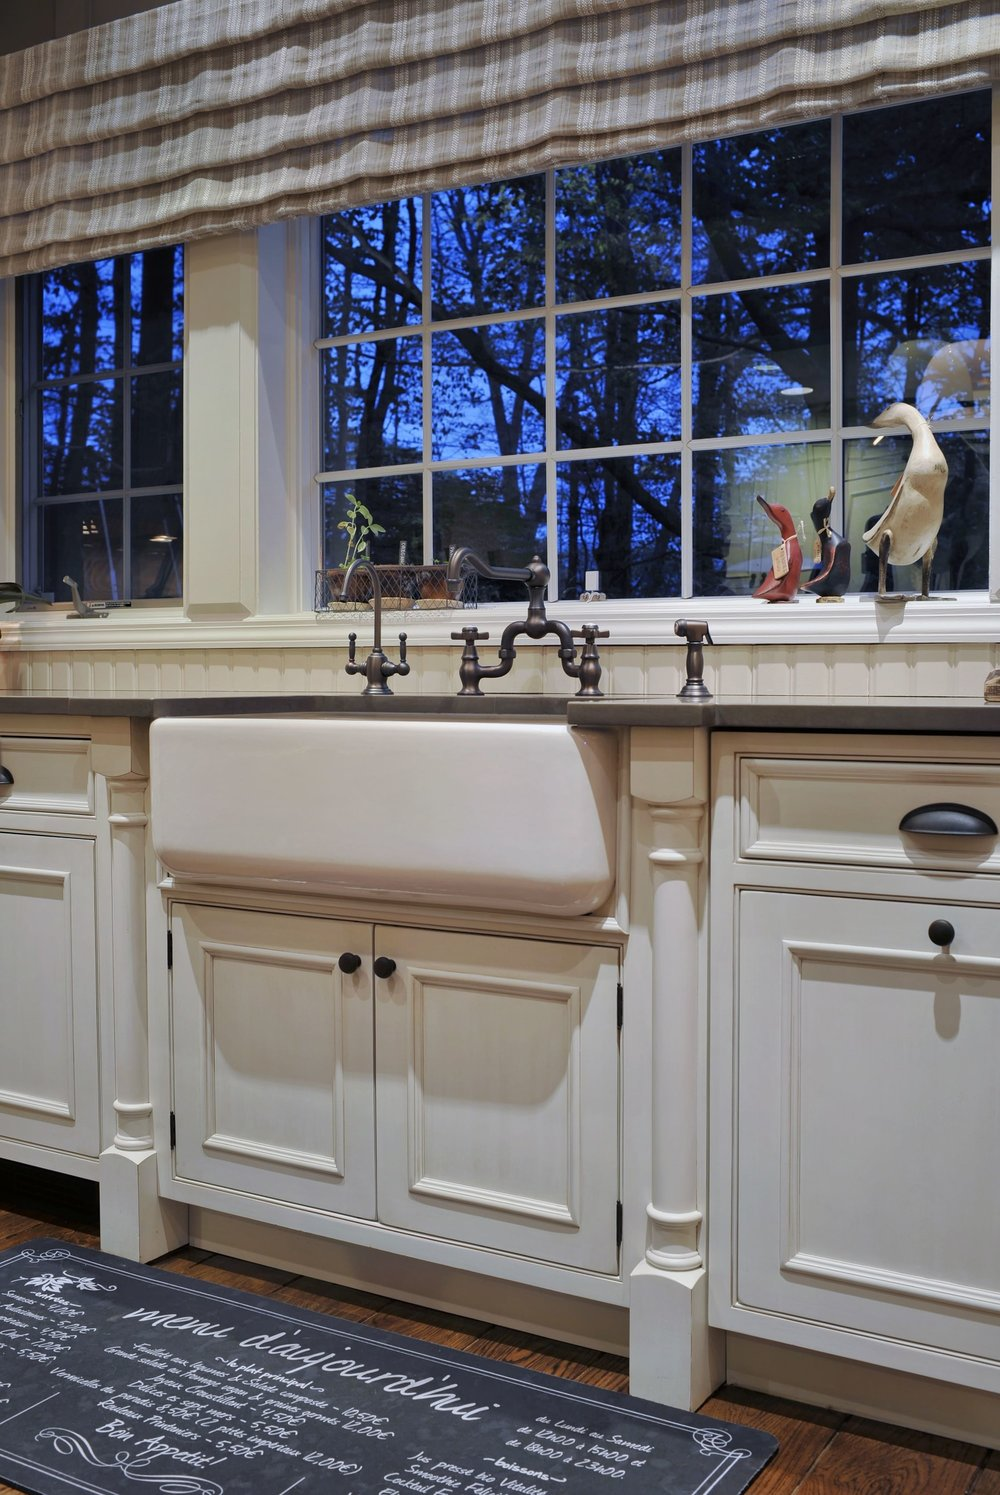 Traditional style kitchen with vintage faucet